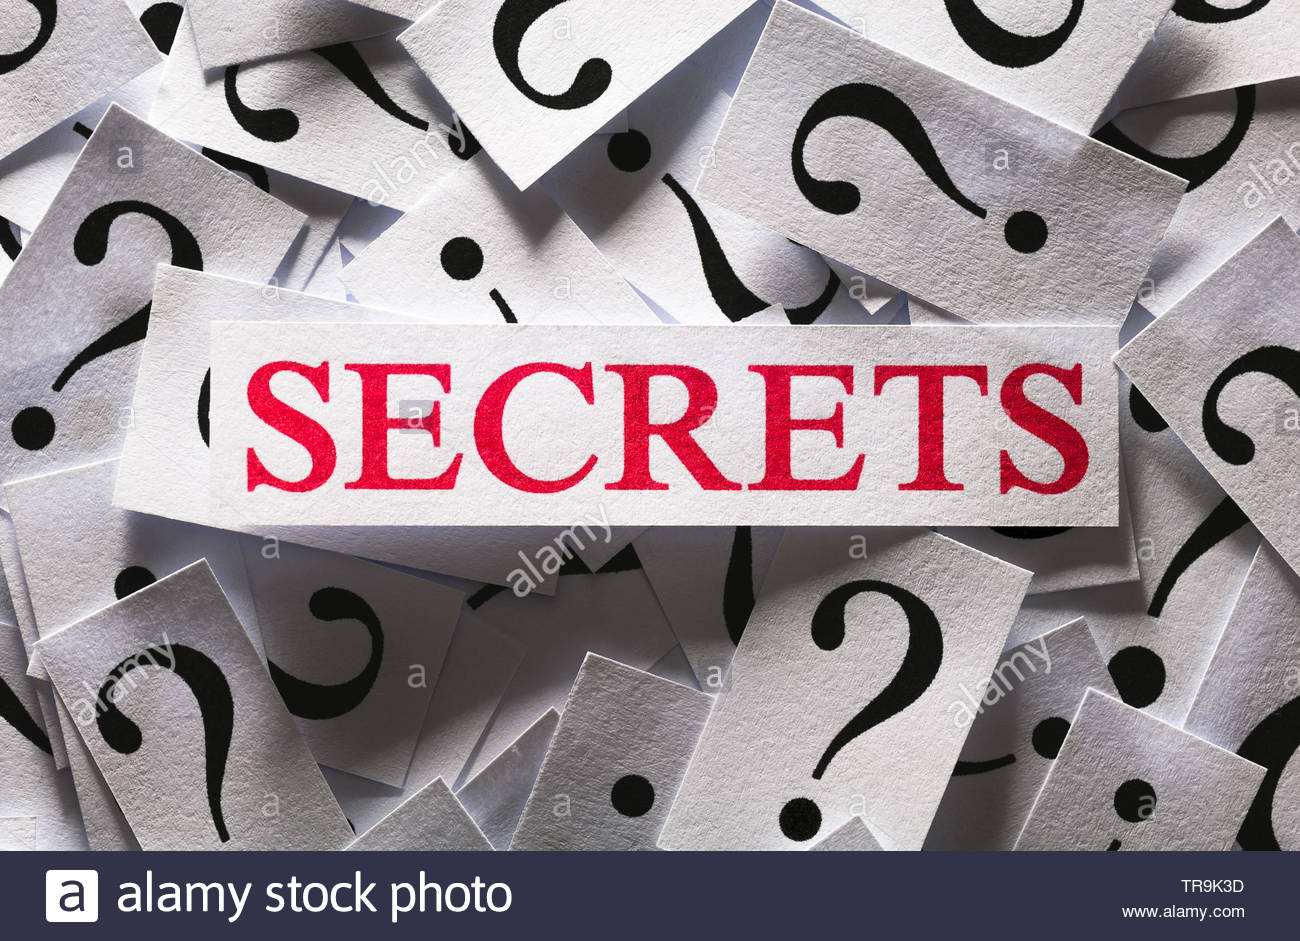 Questions about the Secrets , too many question marks - Stock Image